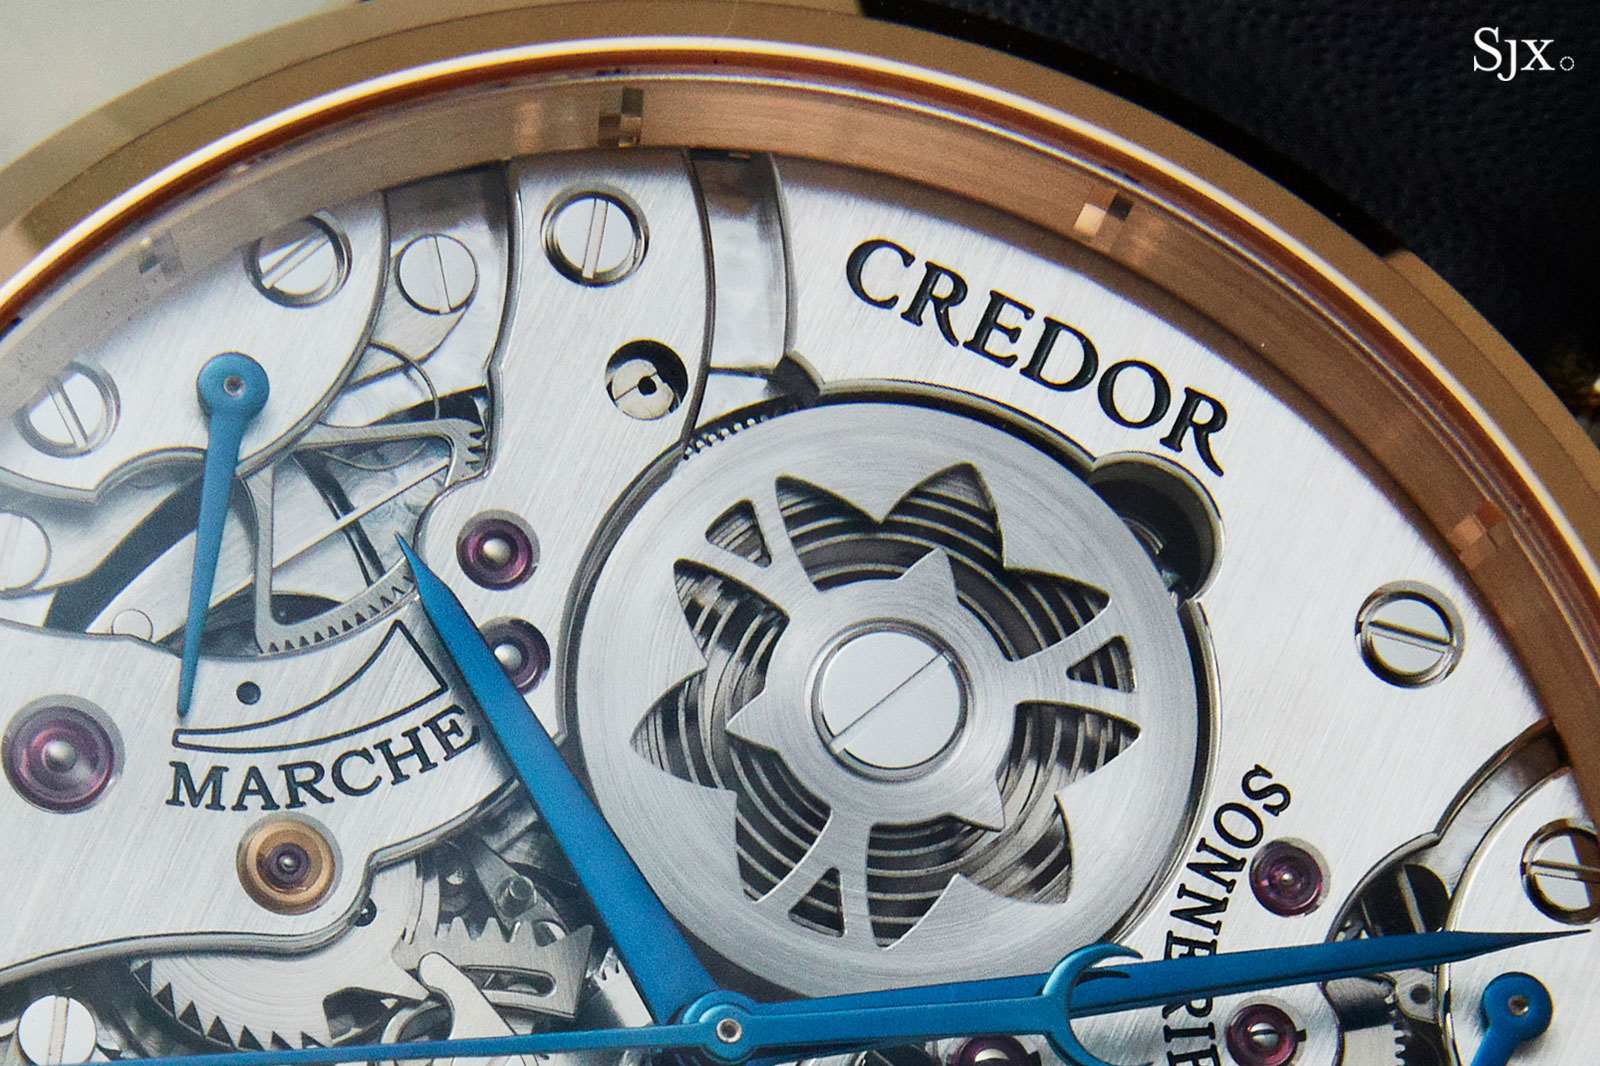 Seiko Credor Spring Drive Sonnerie Christies 2